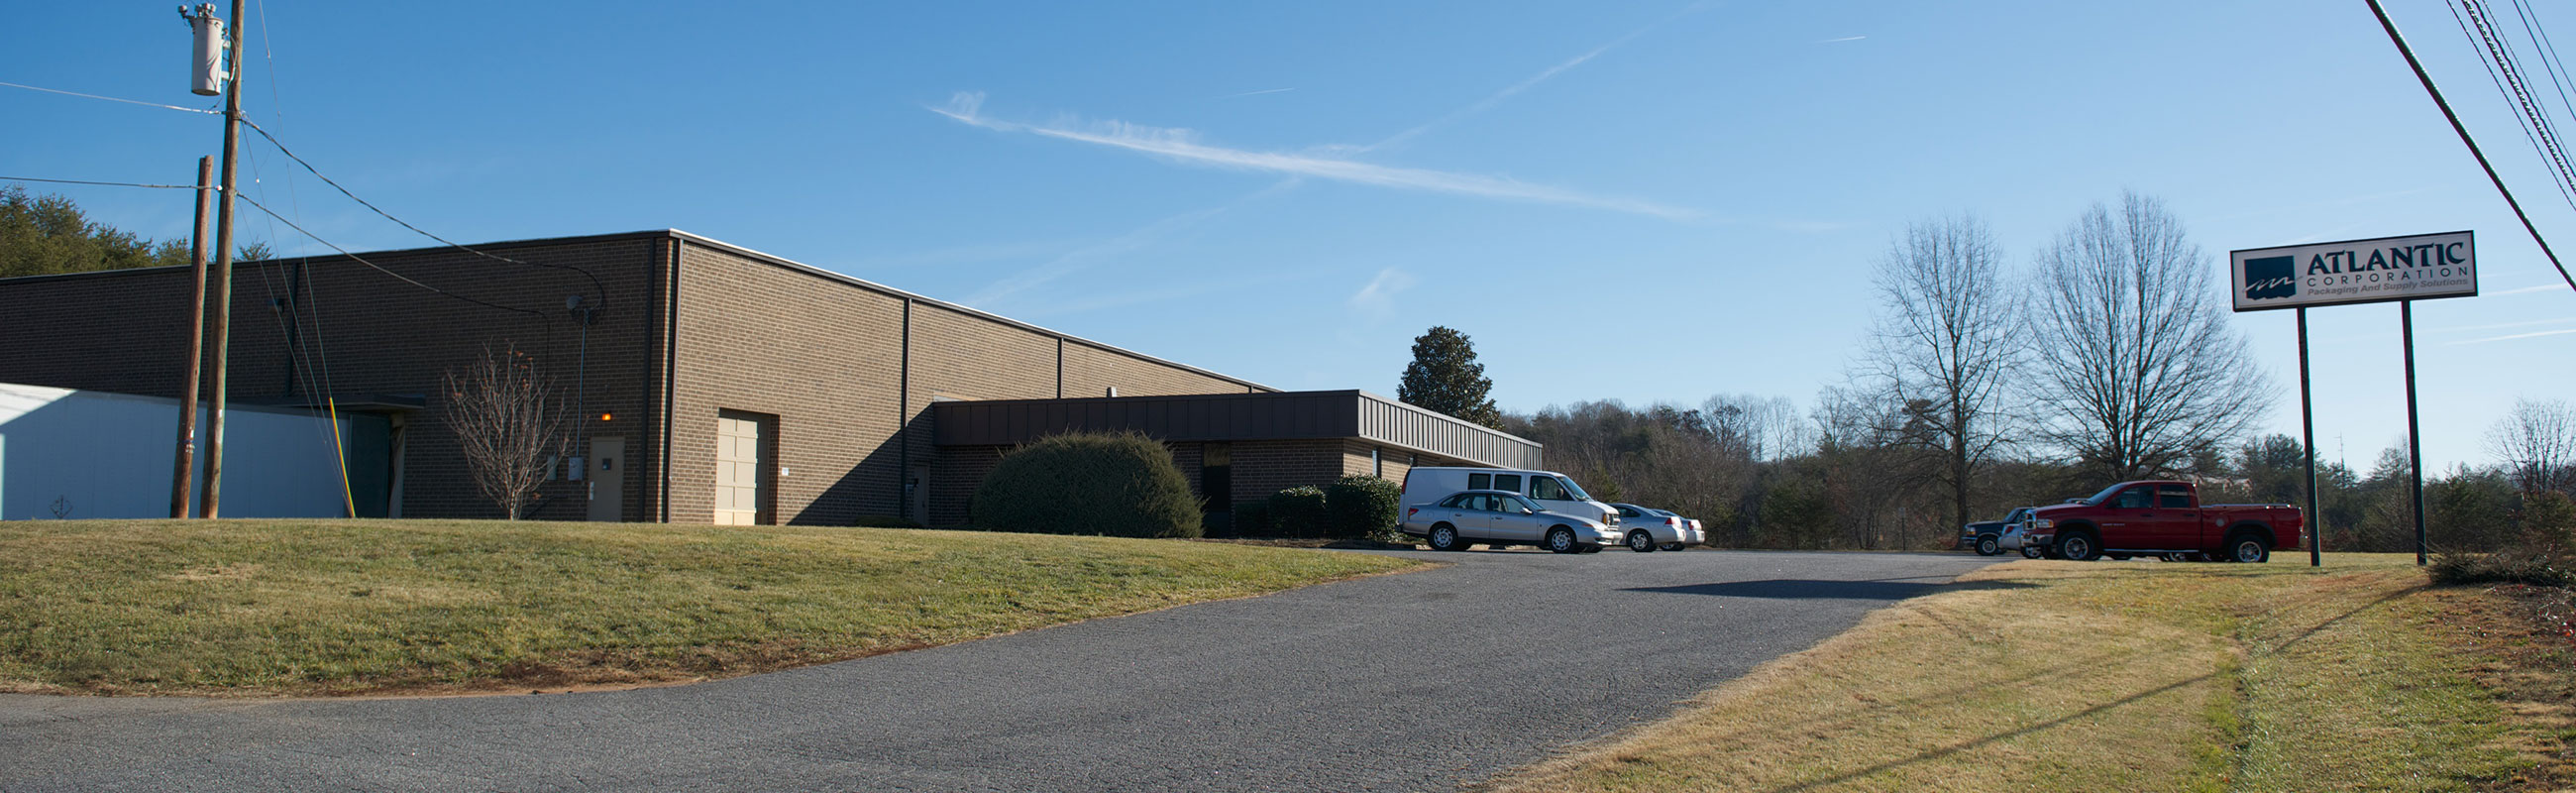 Hickory atlantic branch exterior